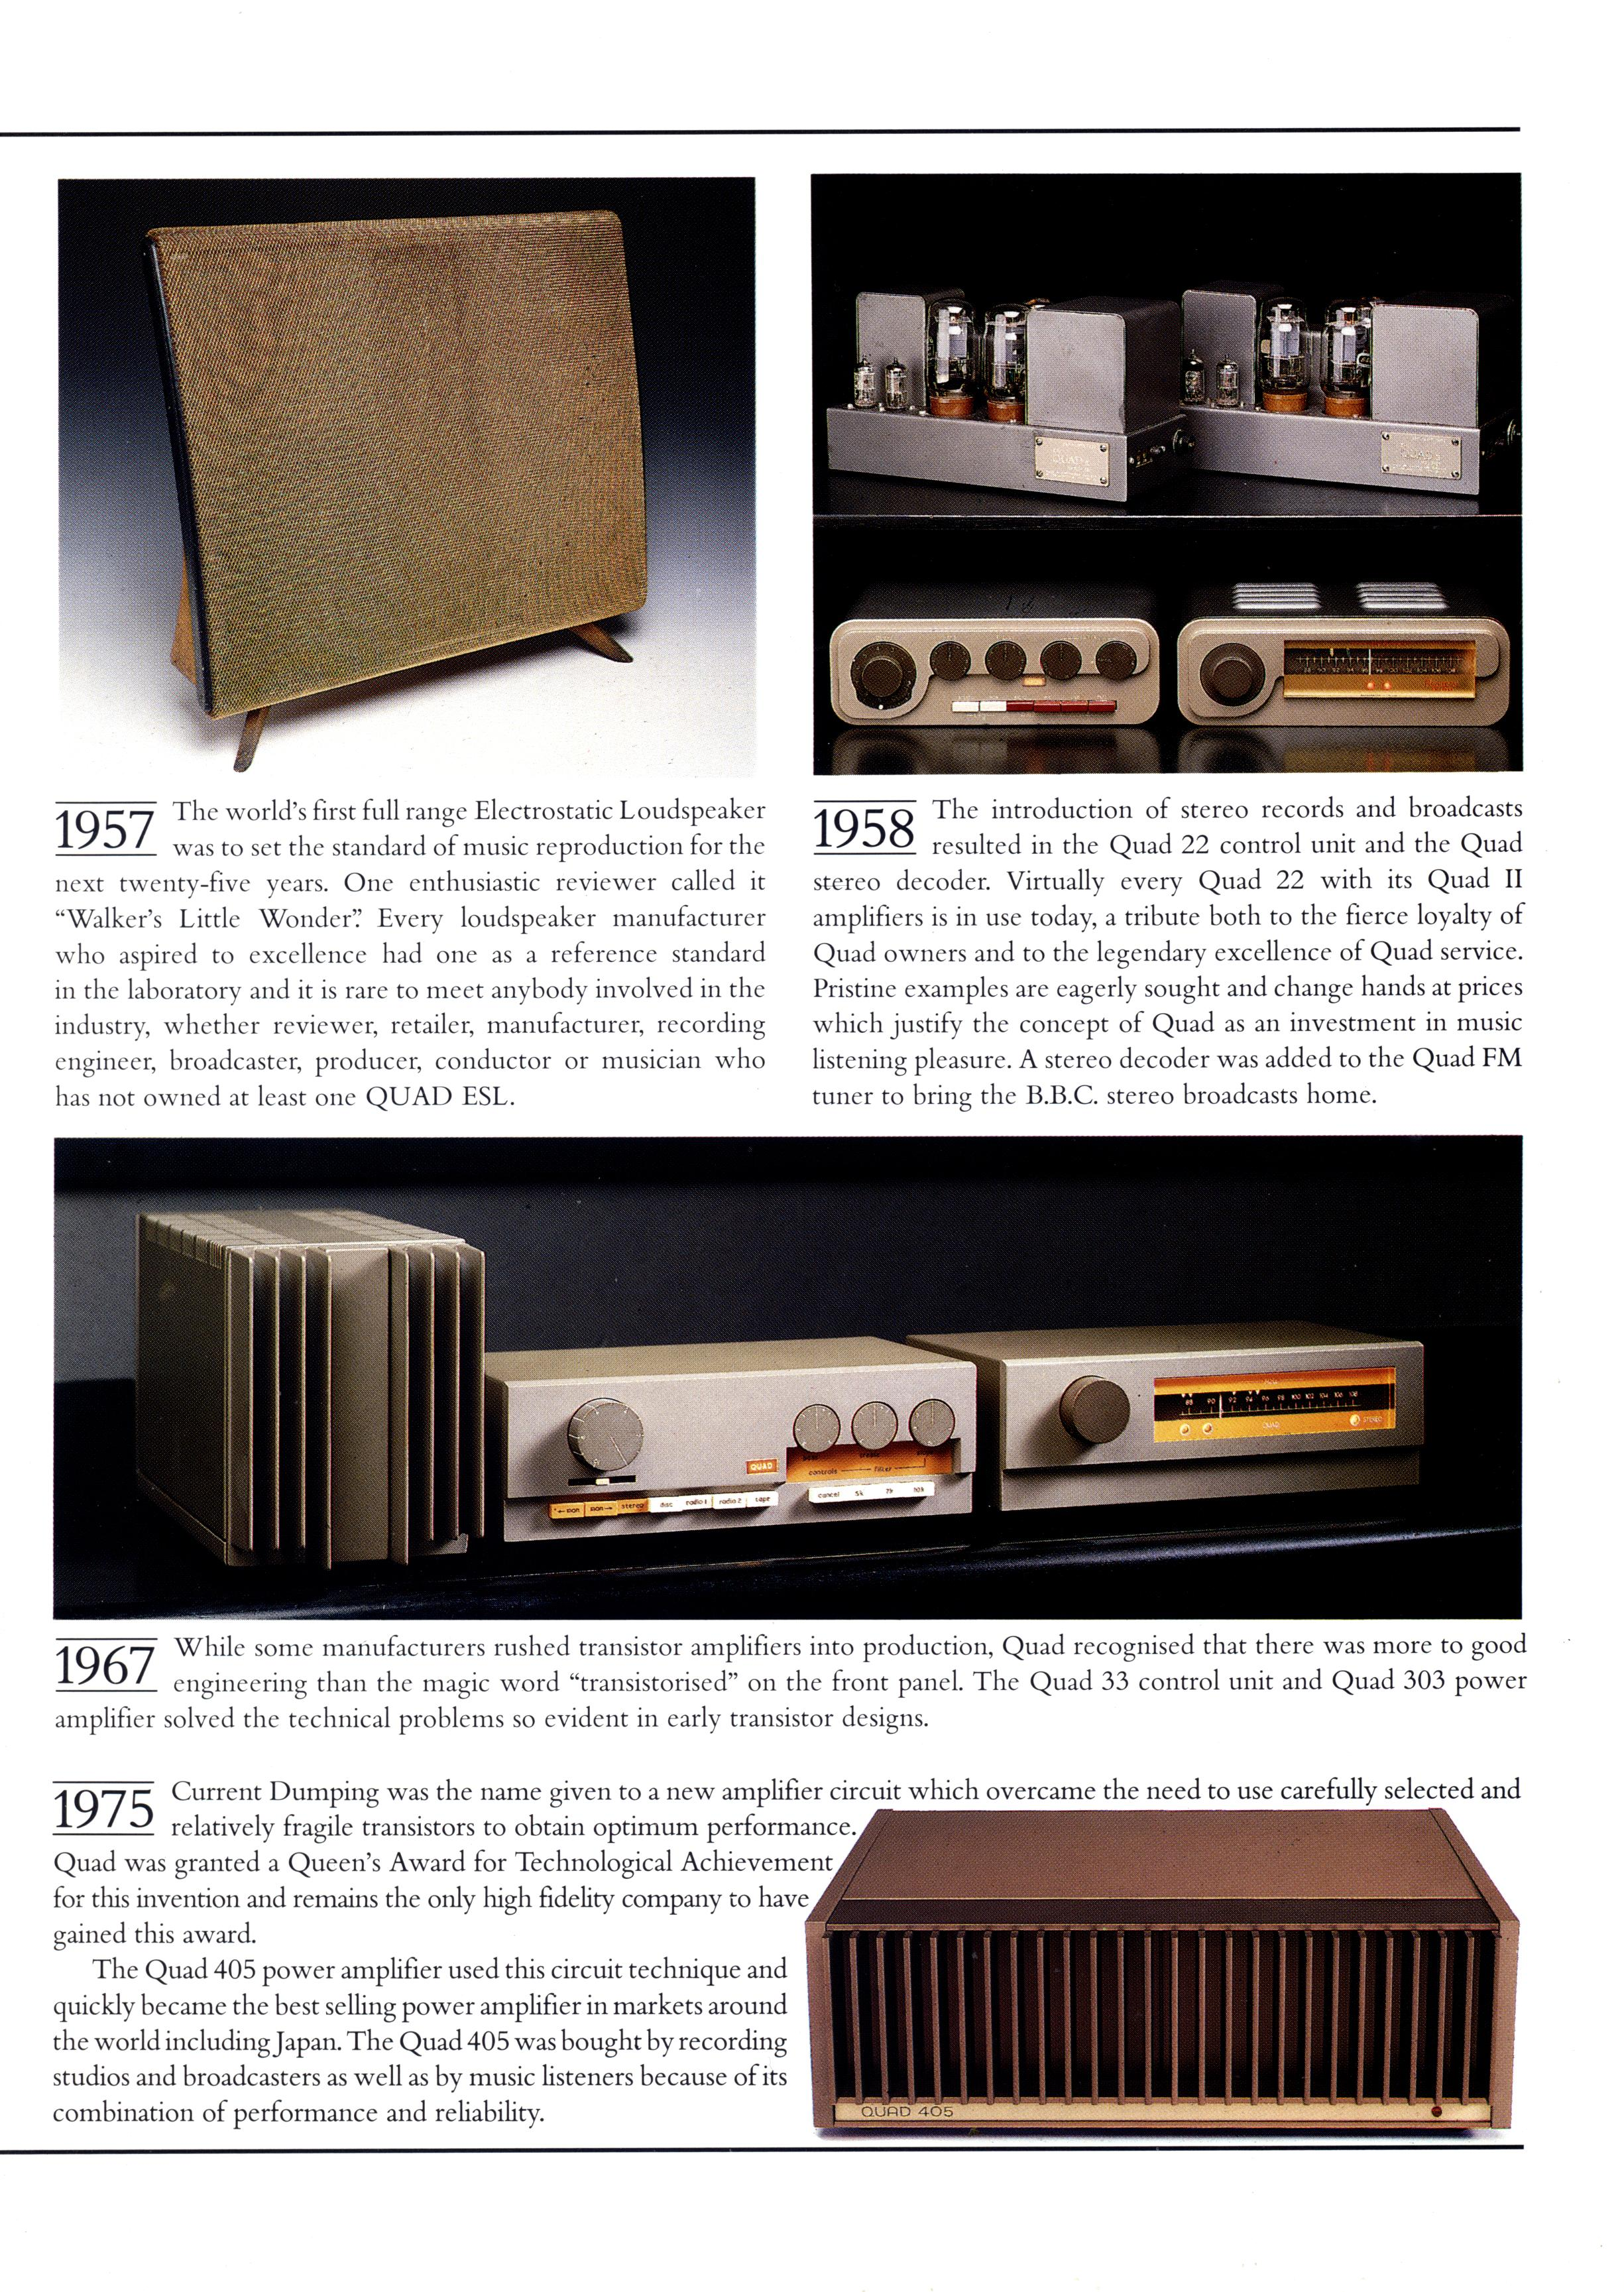 UK Hi-Fi History Society - QUAD General